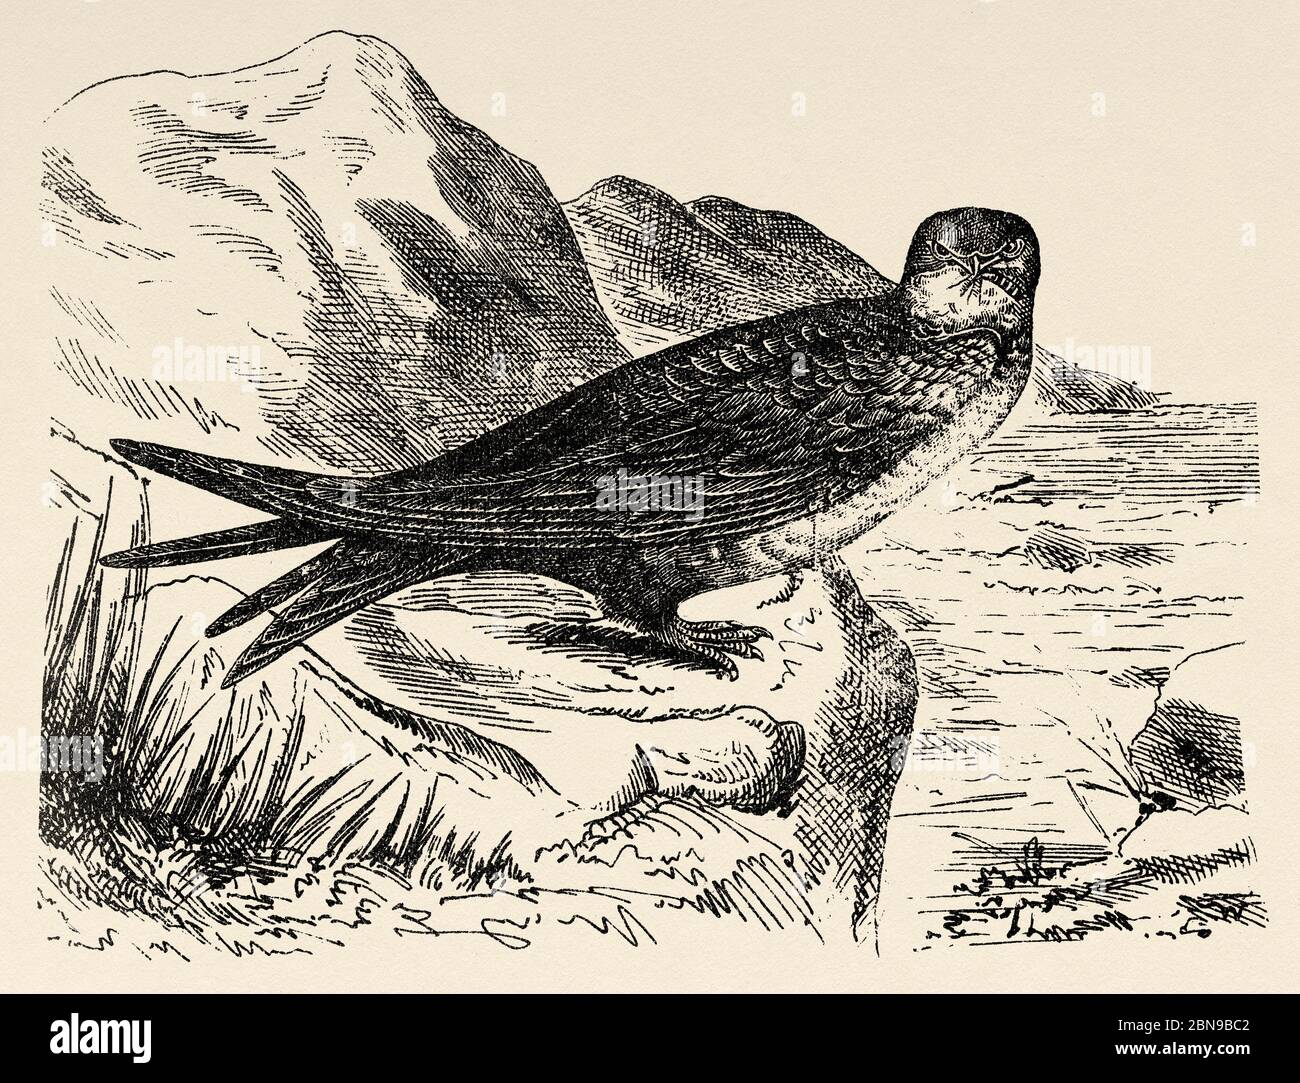 The common swift (Tachymarptis melba) species of apodiform bird of the Apodidae family typical of southern Eurasia and Africa. Old engraved animal illustration 19th century Stock Photo